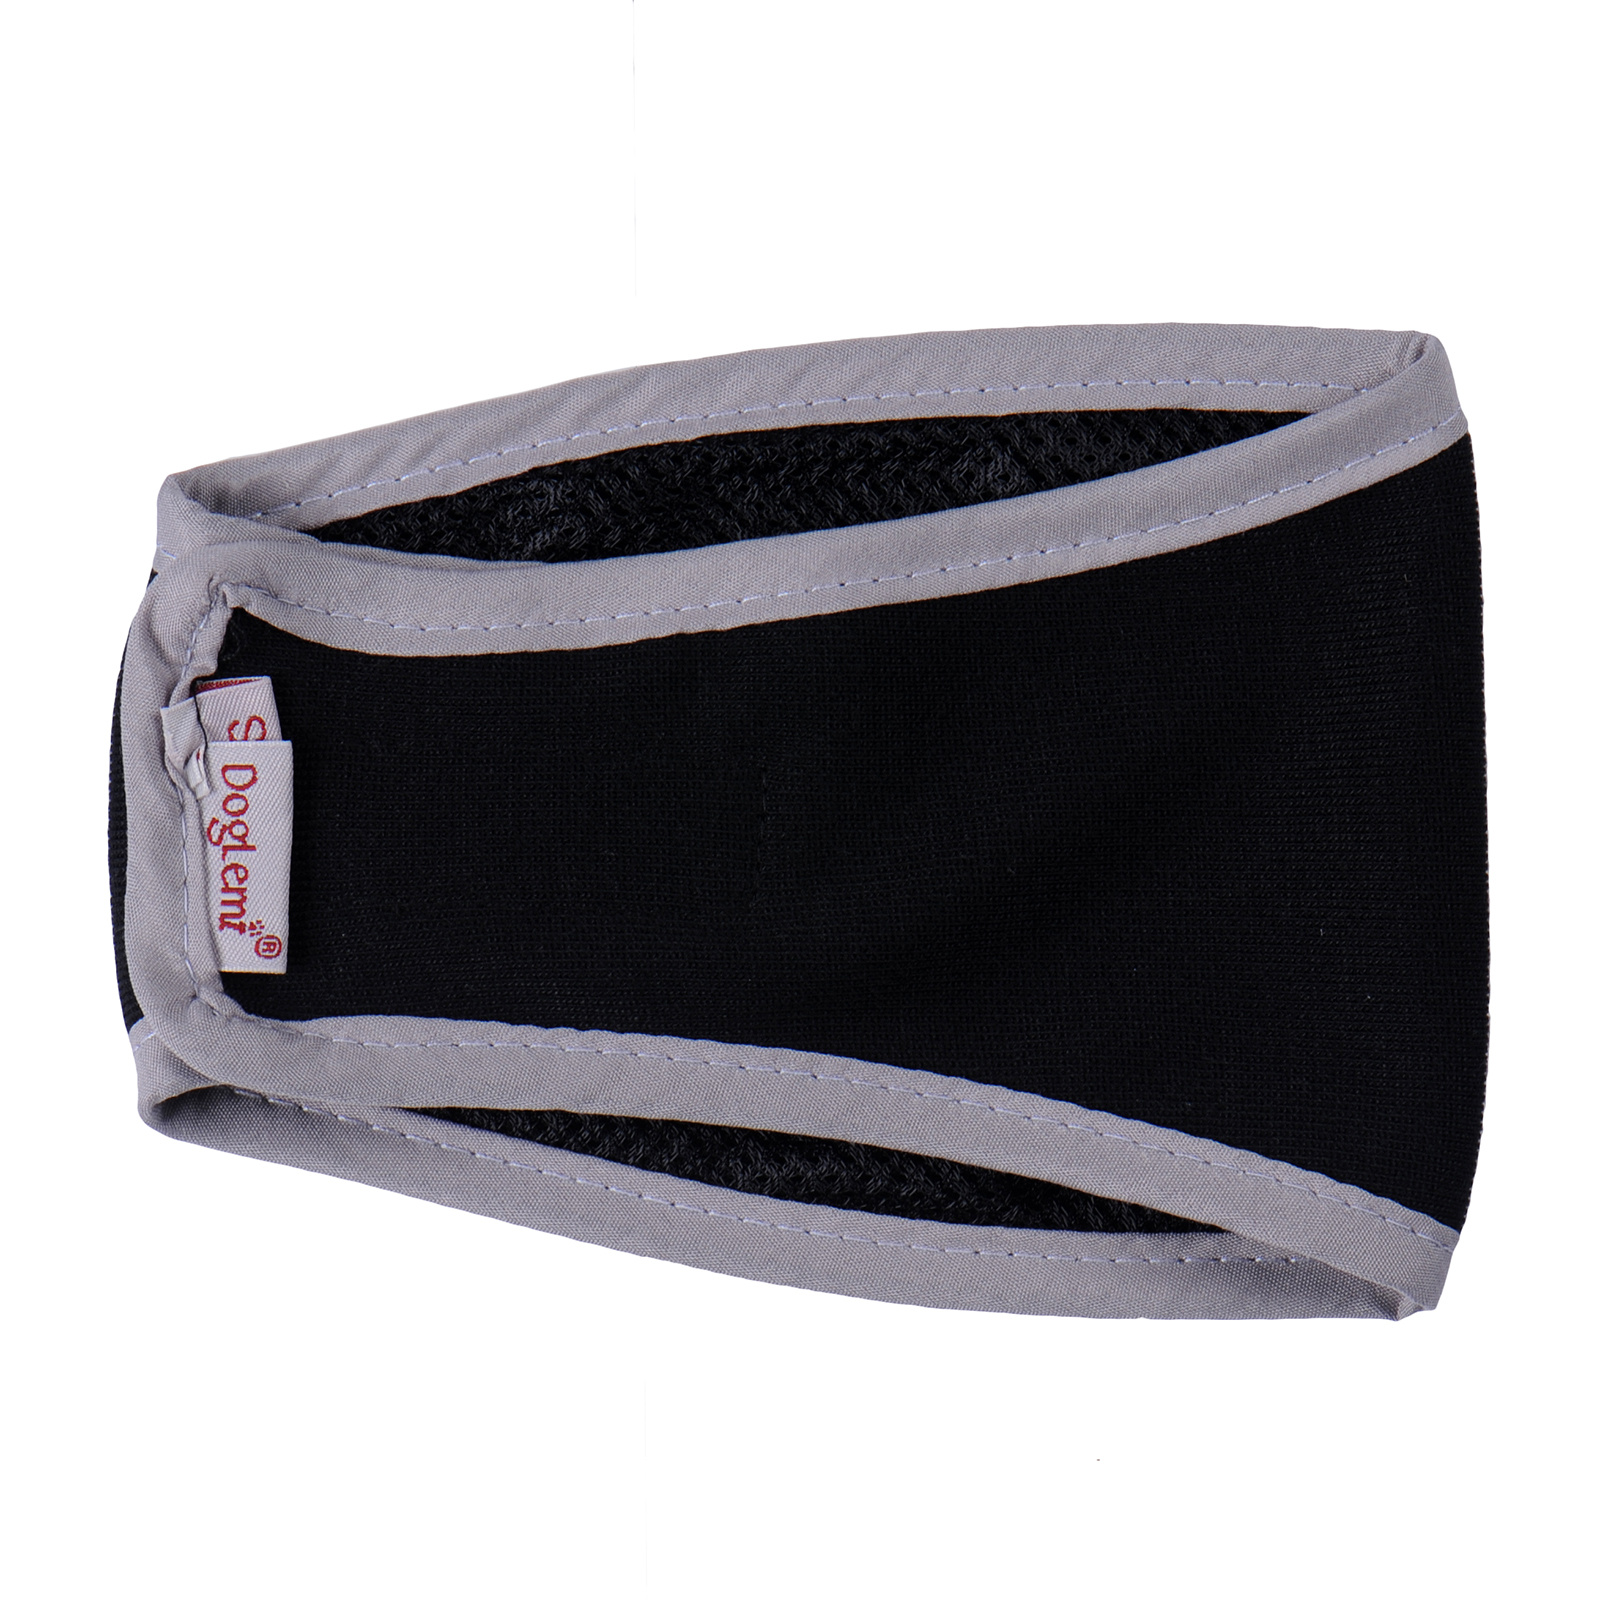 Reusable-Male-Dog-Wrap-Physiological-Pants-Band-Diapers-Belly-Nappy-Sanitary